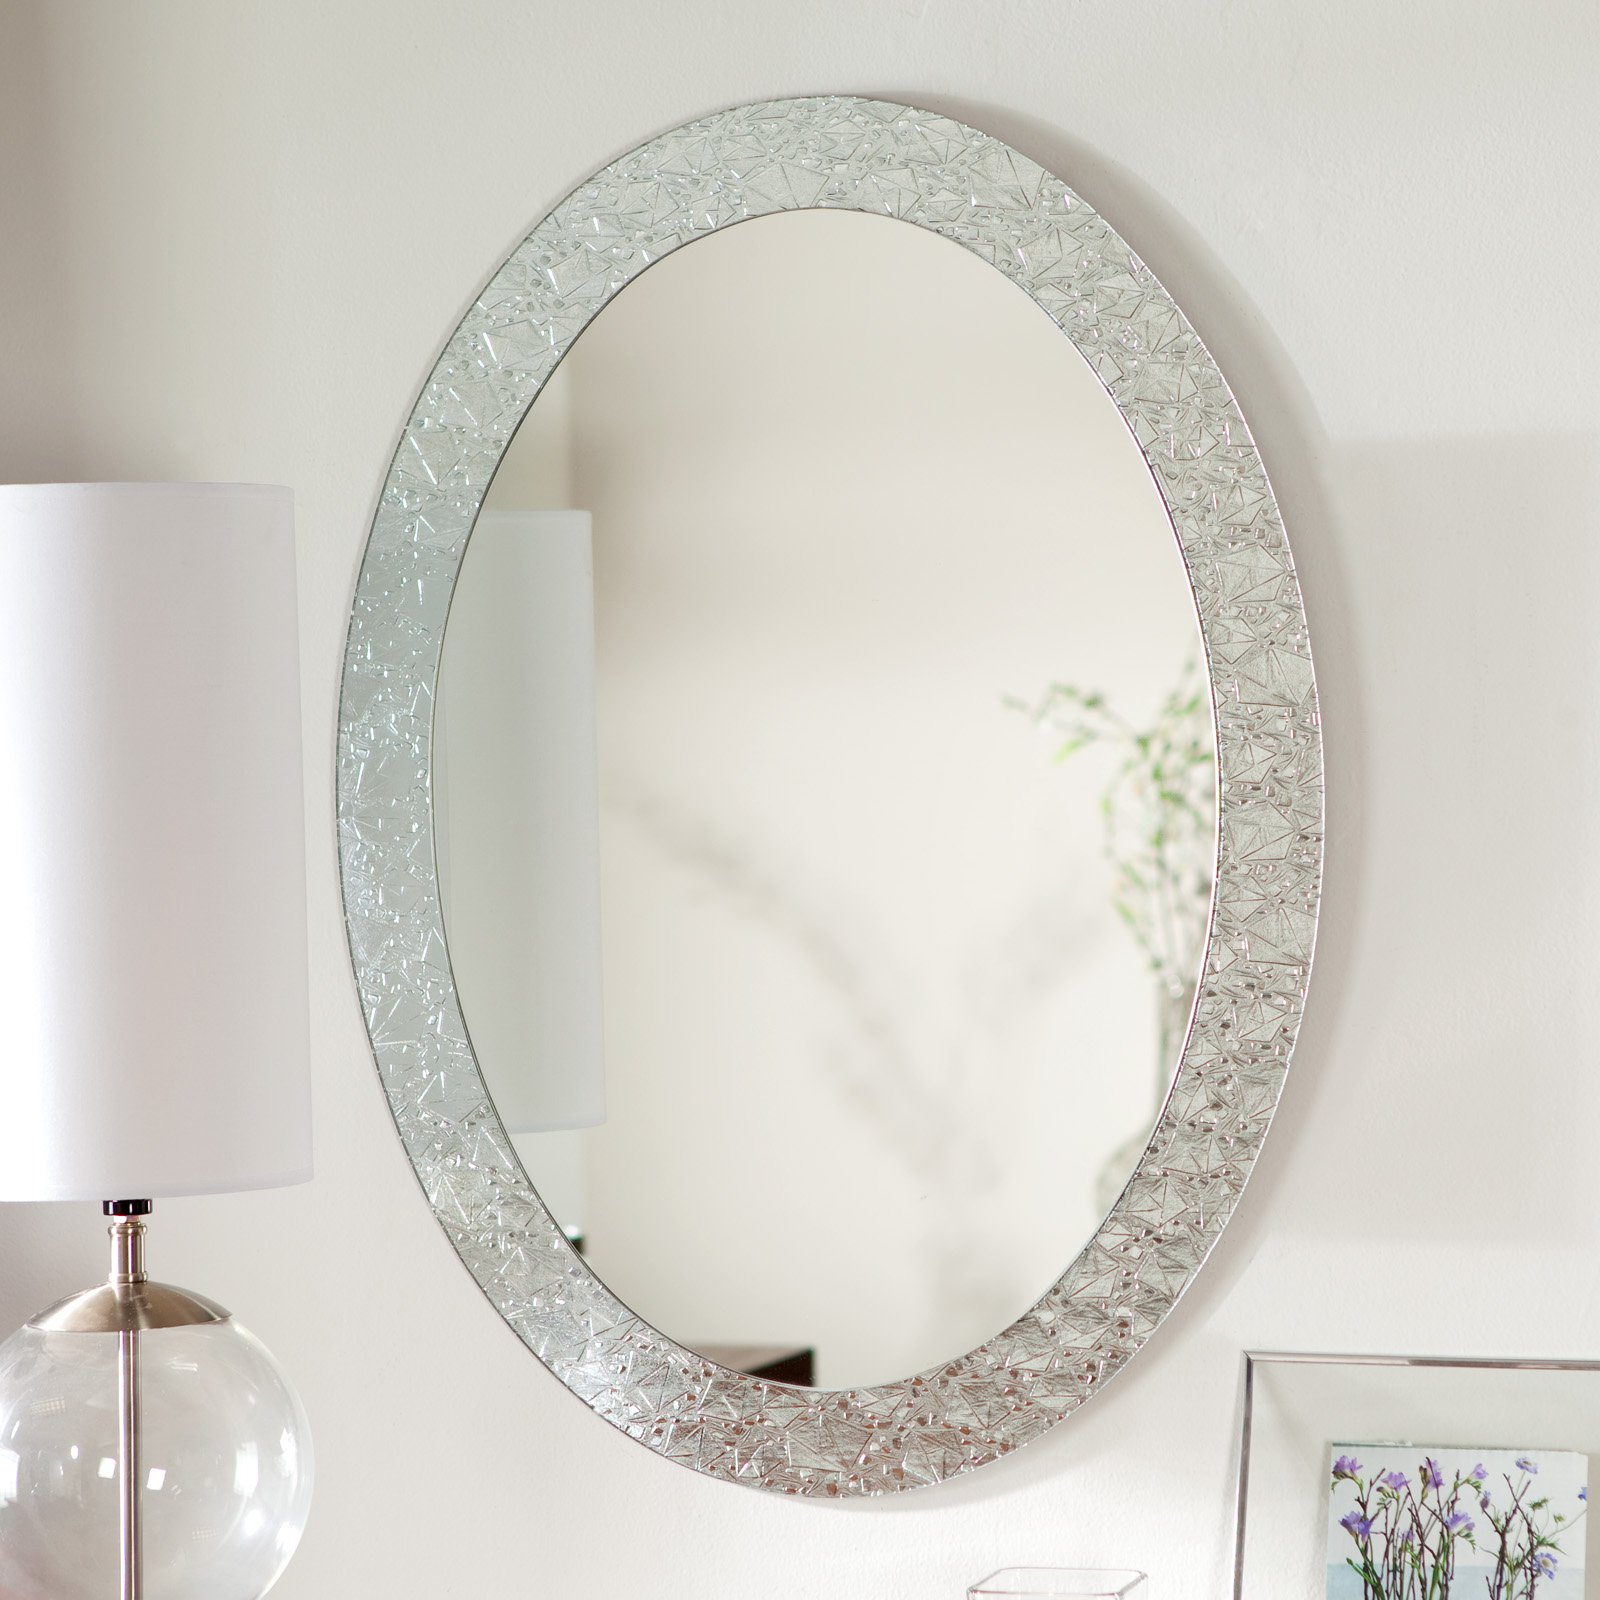 Décor Wonderland Frameless Crystal Wall Mirror 23.5W x 31.5H in. by Decor Wonderland of US